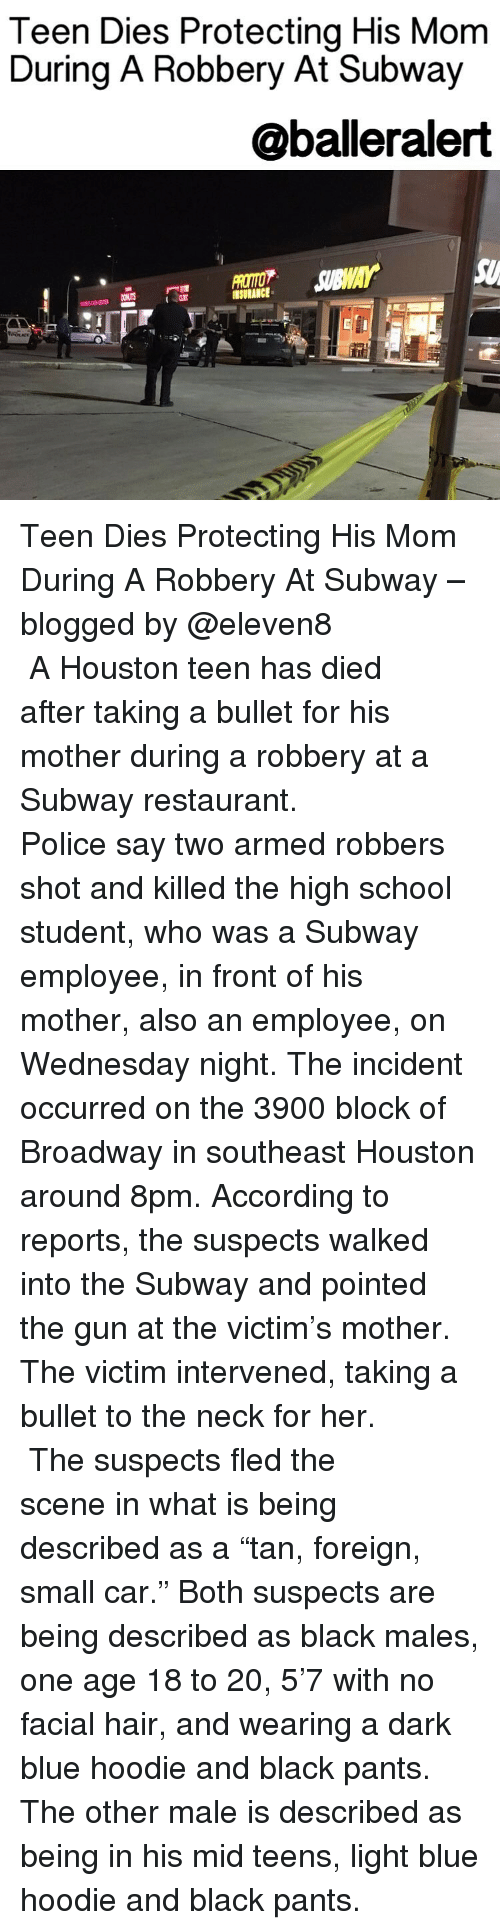 """Memes, Subway, and Blog: Teen Dies Protecting His Mom  During A Robbery At Subway  @balleralert Teen Dies Protecting His Mom During A Robbery At Subway – blogged by @eleven8 ⠀⠀⠀⠀⠀⠀⠀⠀⠀ ⠀⠀⠀⠀⠀⠀⠀⠀⠀ A Houston teen has died after taking a bullet for his mother during a robbery at a Subway restaurant. ⠀⠀⠀⠀⠀⠀⠀⠀⠀ ⠀⠀⠀⠀⠀⠀⠀⠀⠀ Police say two armed robbers shot and killed the high school student, who was a Subway employee, in front of his mother, also an employee, on Wednesday night. The incident occurred on the 3900 block of Broadway in southeast Houston around 8pm. According to reports, the suspects walked into the Subway and pointed the gun at the victim's mother. The victim intervened, taking a bullet to the neck for her. ⠀⠀⠀⠀⠀⠀⠀⠀⠀ ⠀⠀⠀⠀⠀⠀⠀⠀⠀ The suspects fled the scene in what is being described as a """"tan, foreign, small car."""" Both suspects are being described as black males, one age 18 to 20, 5'7 with no facial hair, and wearing a dark blue hoodie and black pants. The other male is described as being in his mid teens, light blue hoodie and black pants."""